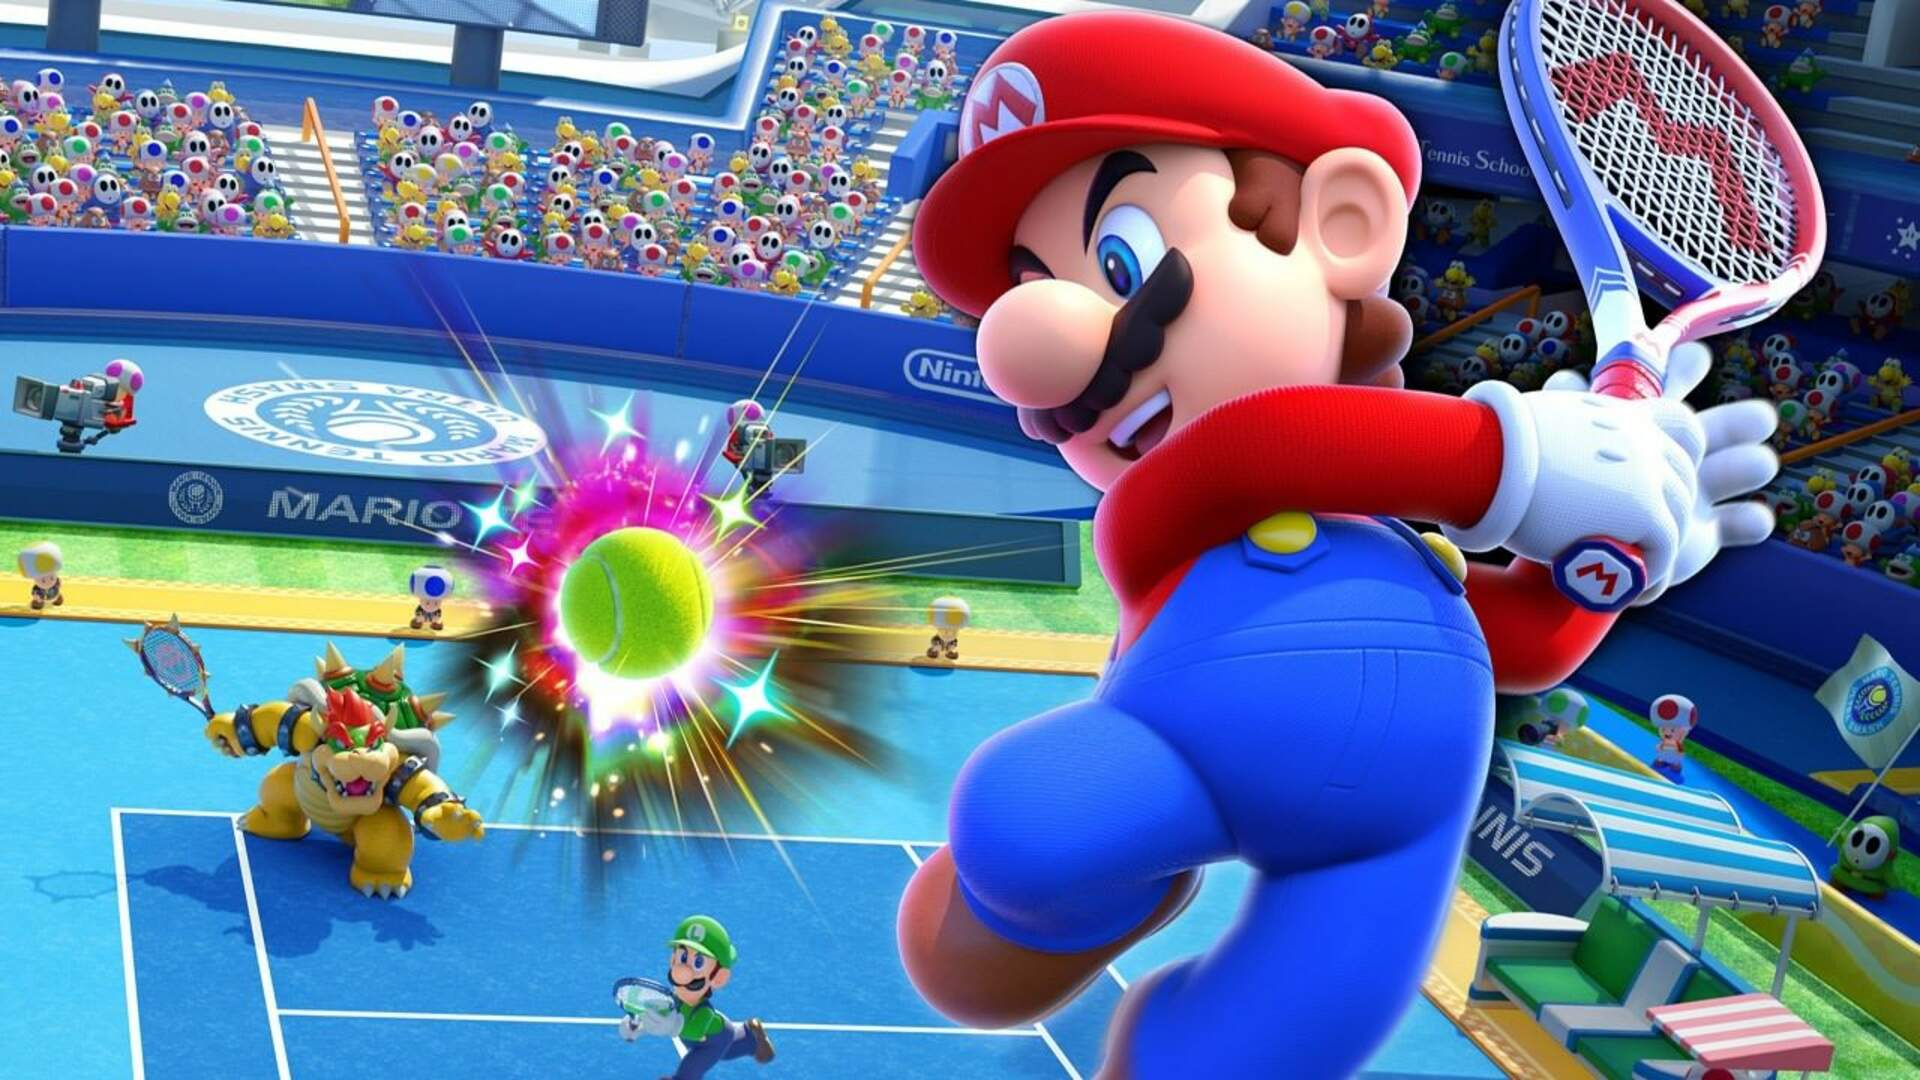 Mario Tennis Charity Tournament Recruits Celebrities Including Seal and the Williams Sisters